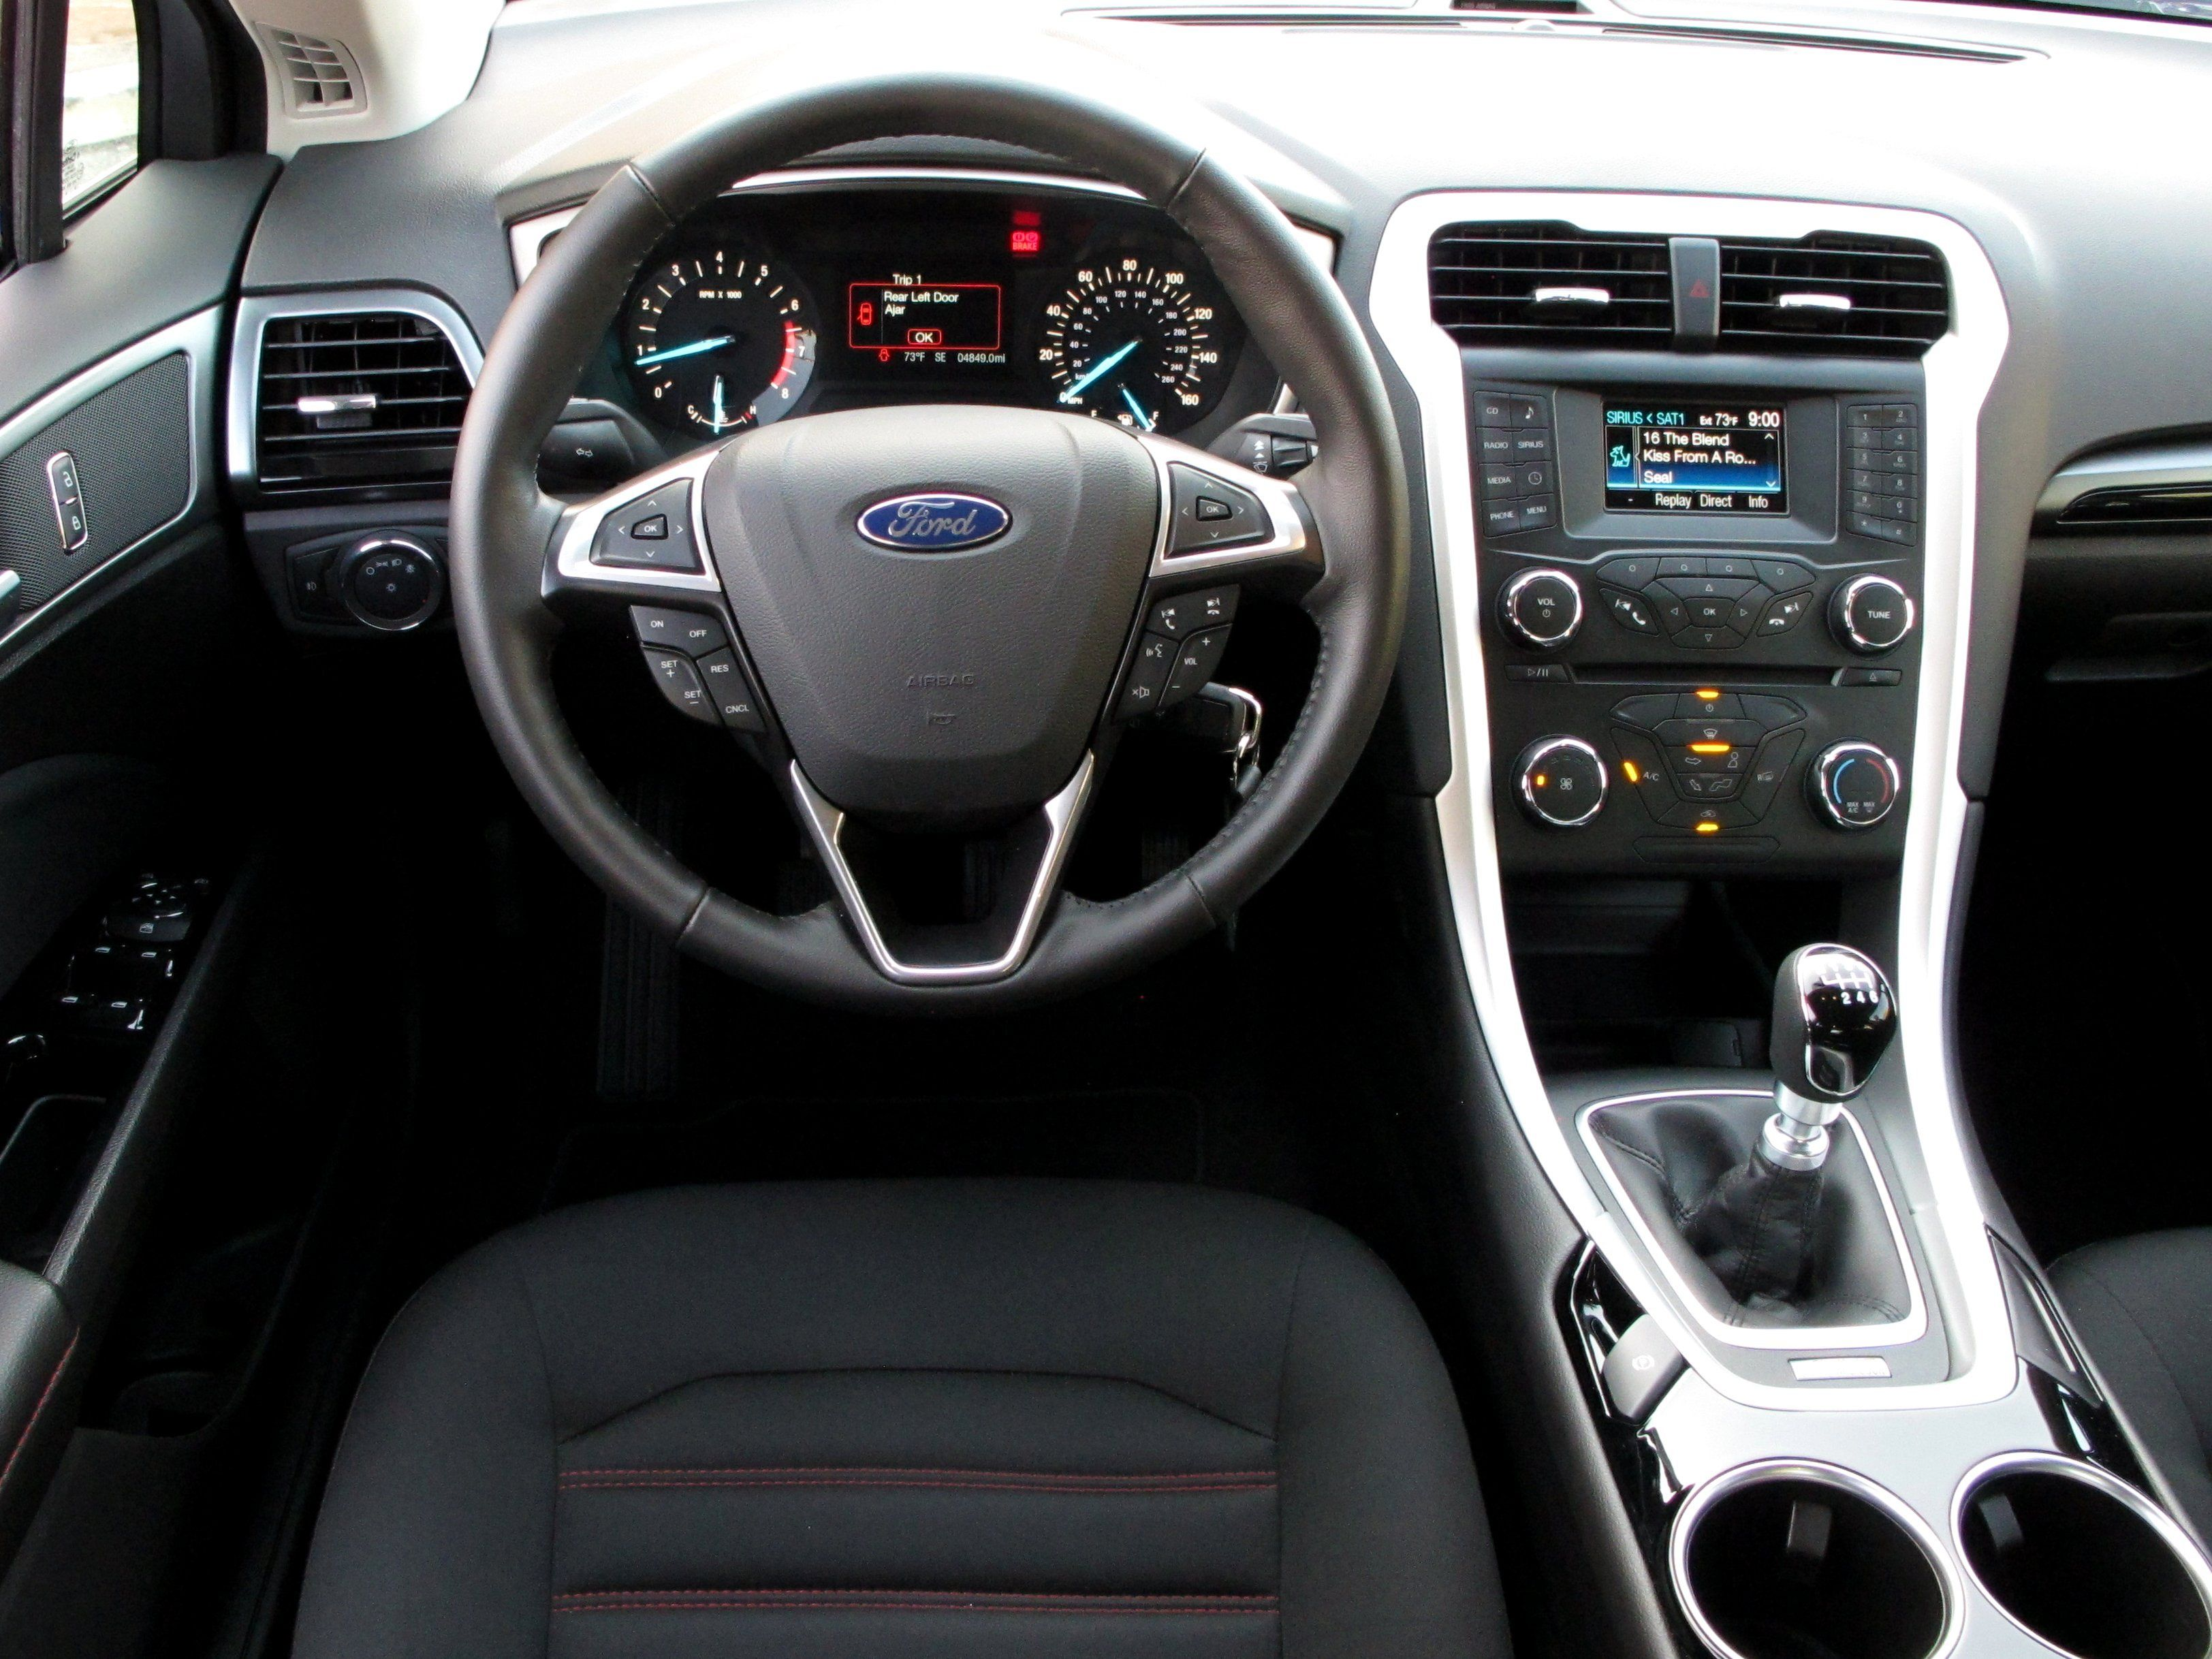 2013 ford fusion interior ford fusion pinterest 2013 ford